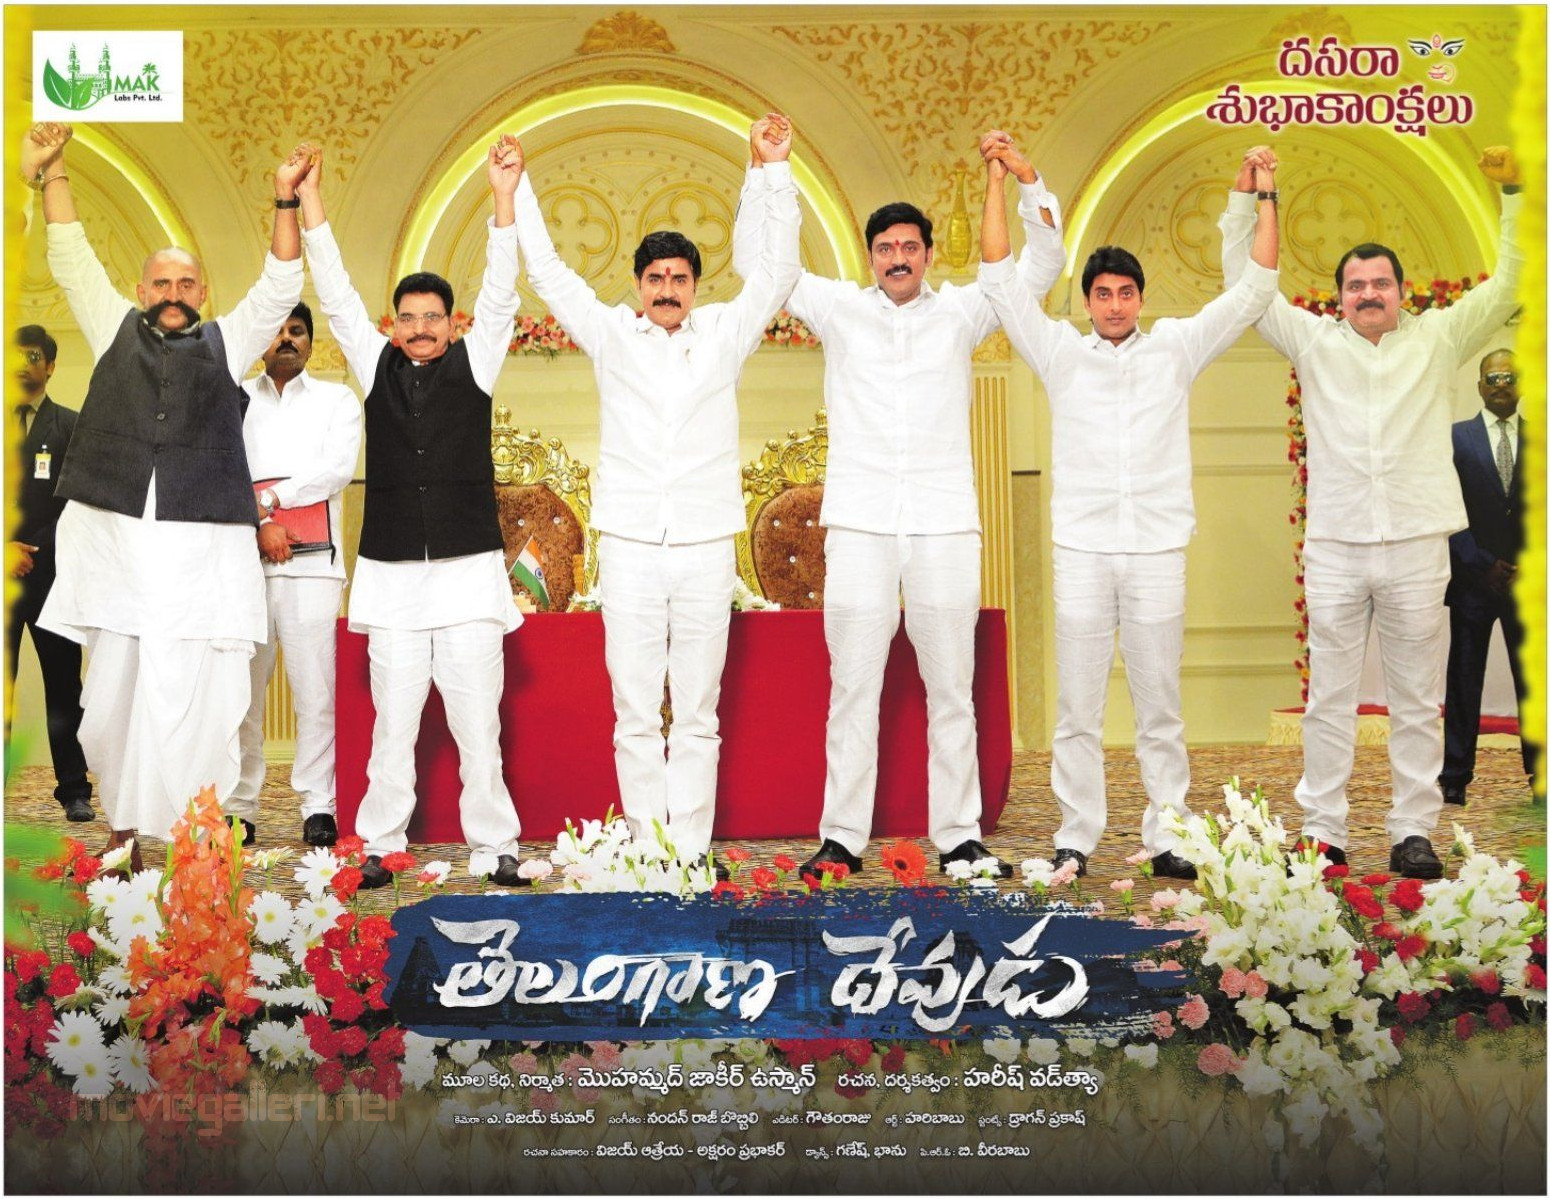 Meka Srikanth Telangana Devudu Movie Dasara Wishes Posters